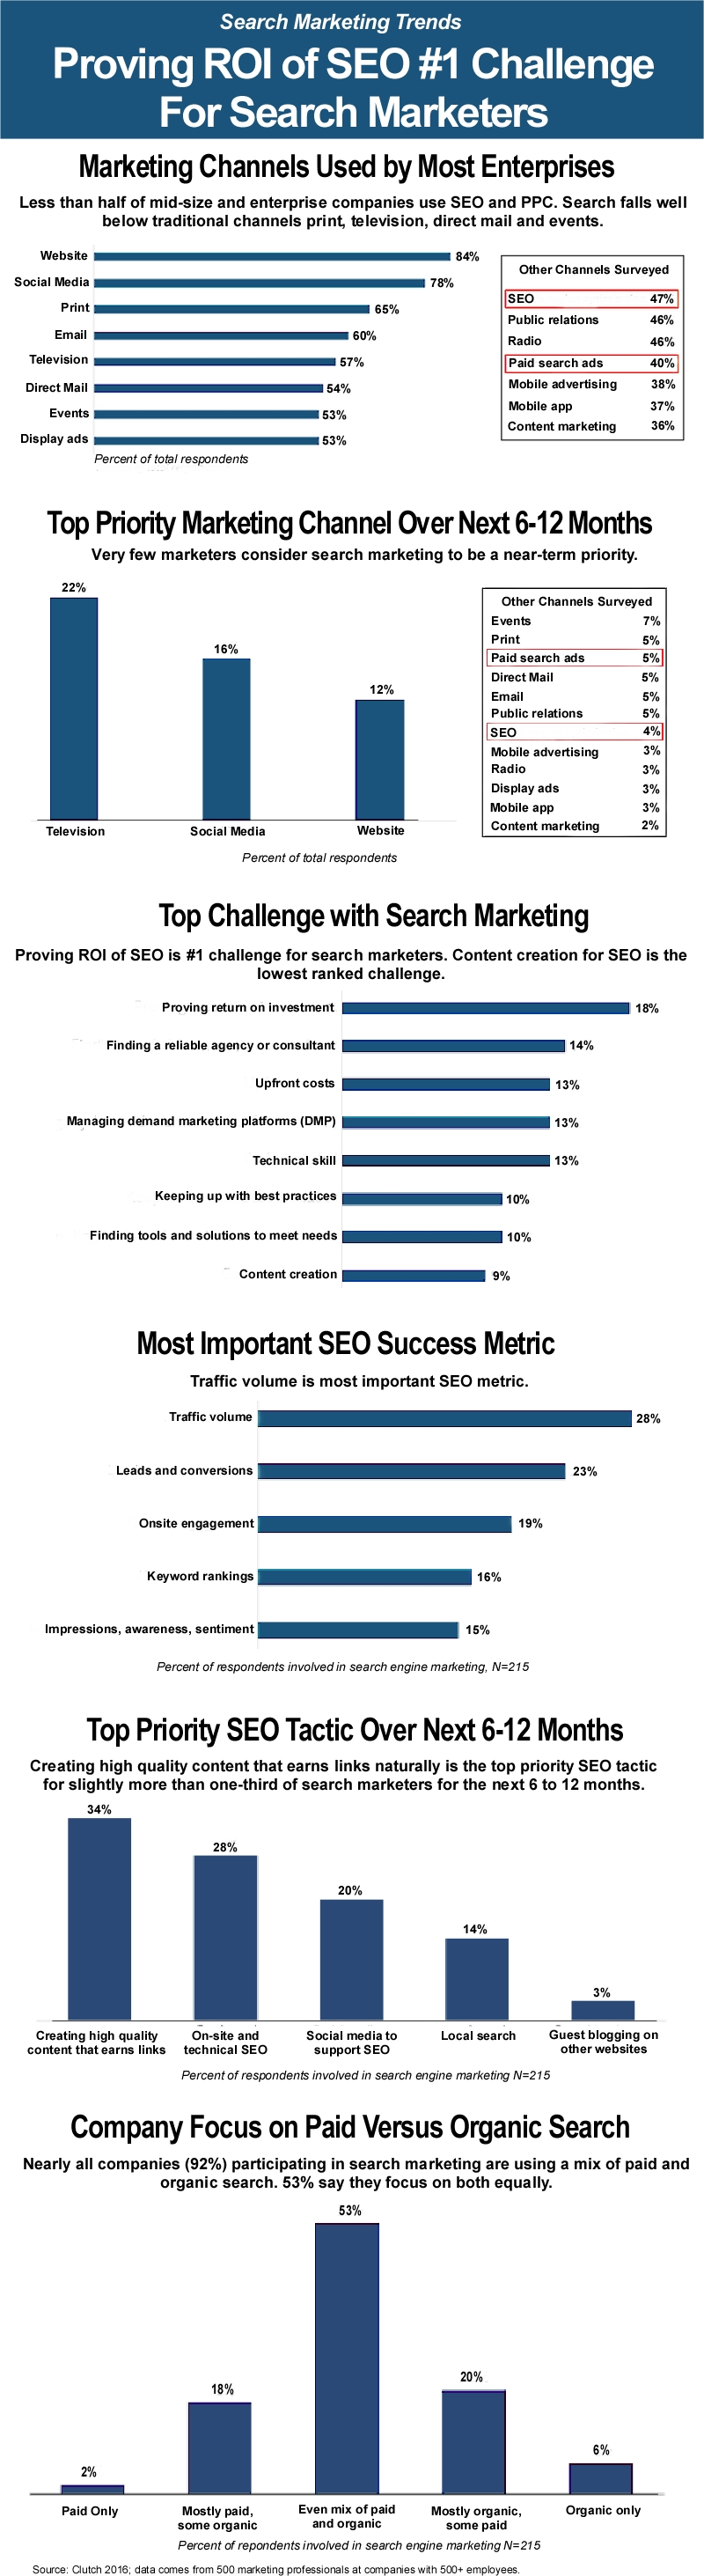 New research among 500 marketing executives at US B2B and B2C companies with more than 500 employees reveals few marketers consider search marketing to be a near-term top-priority marketing tactic and that proving the ROI of SEO is the # 1 challenge for search marketers. #searchmarketing #seo #ppc